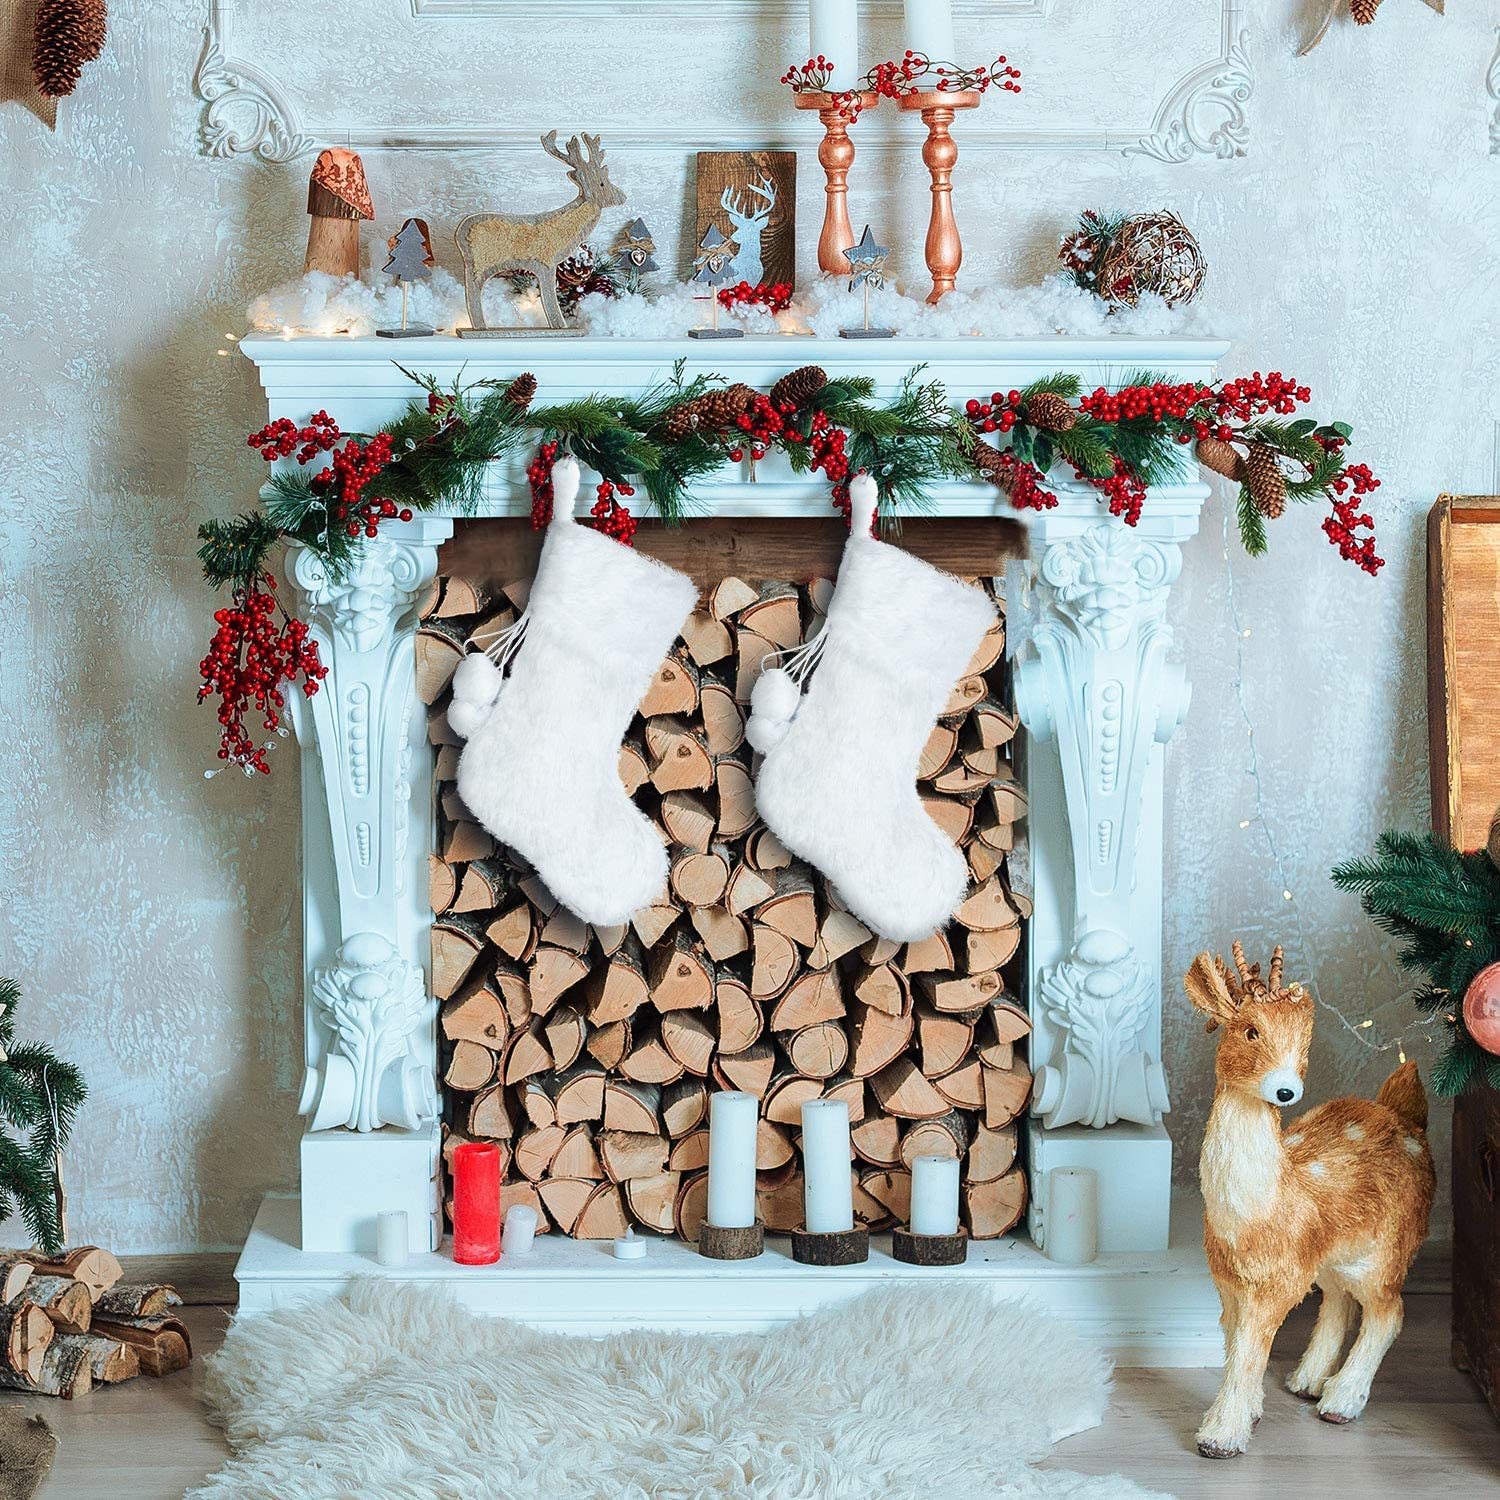 White Faux Fur Stocking Boao 2 Pieces 20 Inch Christmas Stockings Snowy White Faux Fur Christmas Stocking for Holiday Party Christmas Fireplace Decorations